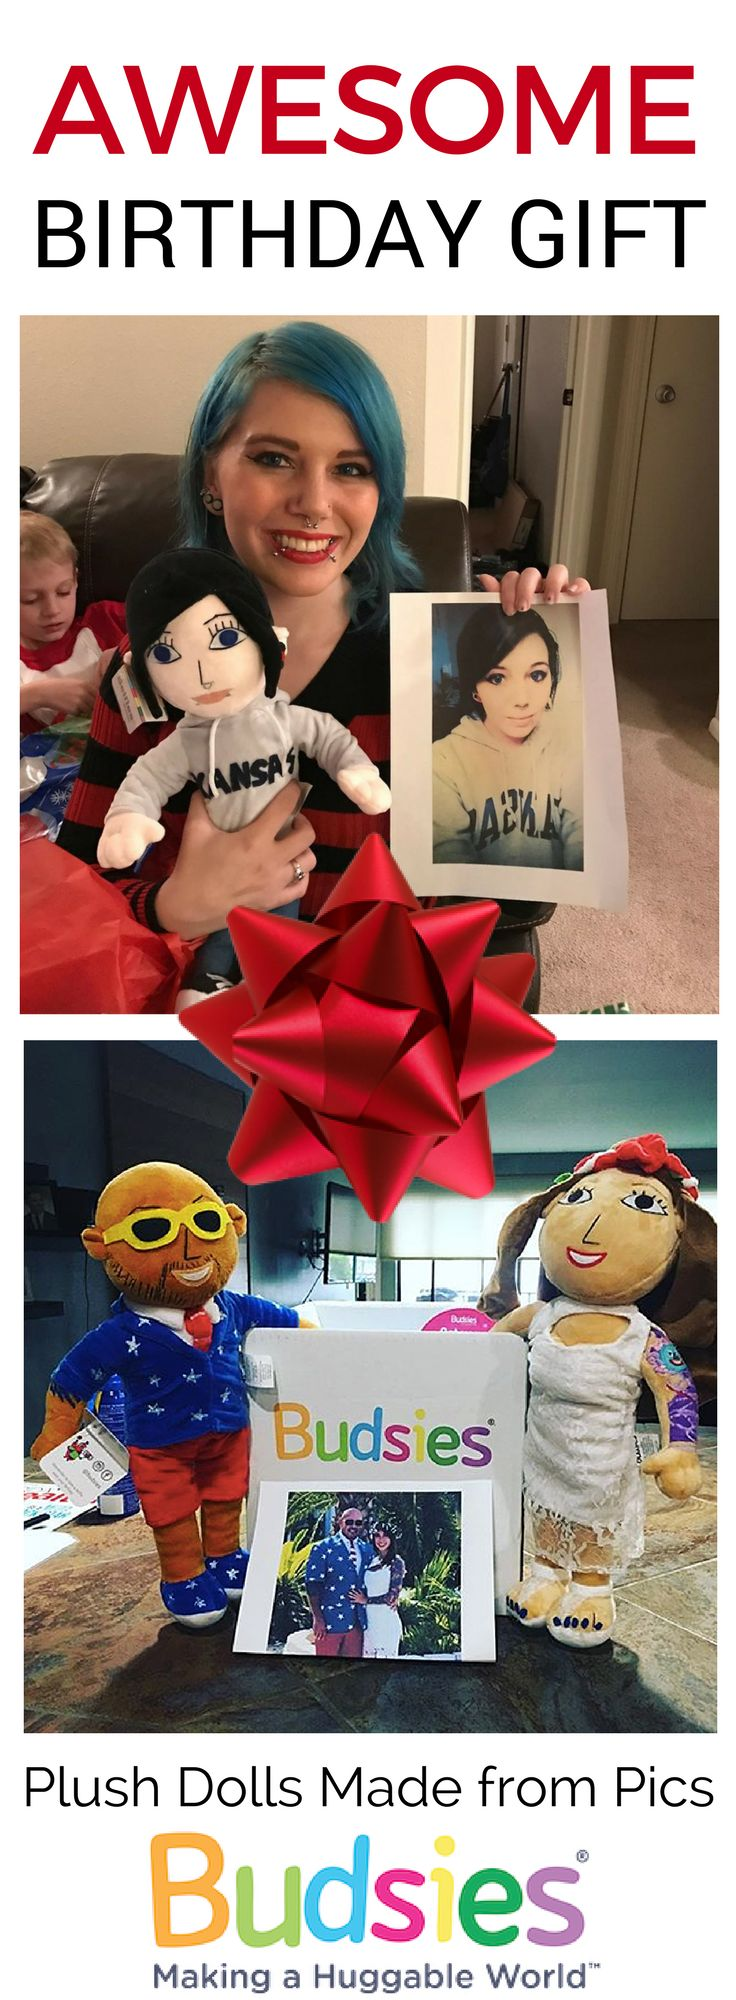 Turn a picture of your friends and loved ones into plush dolls that look just like them! It's a super fun and unique birthday gift idea that they will surely love! Get started at www.budsies.com